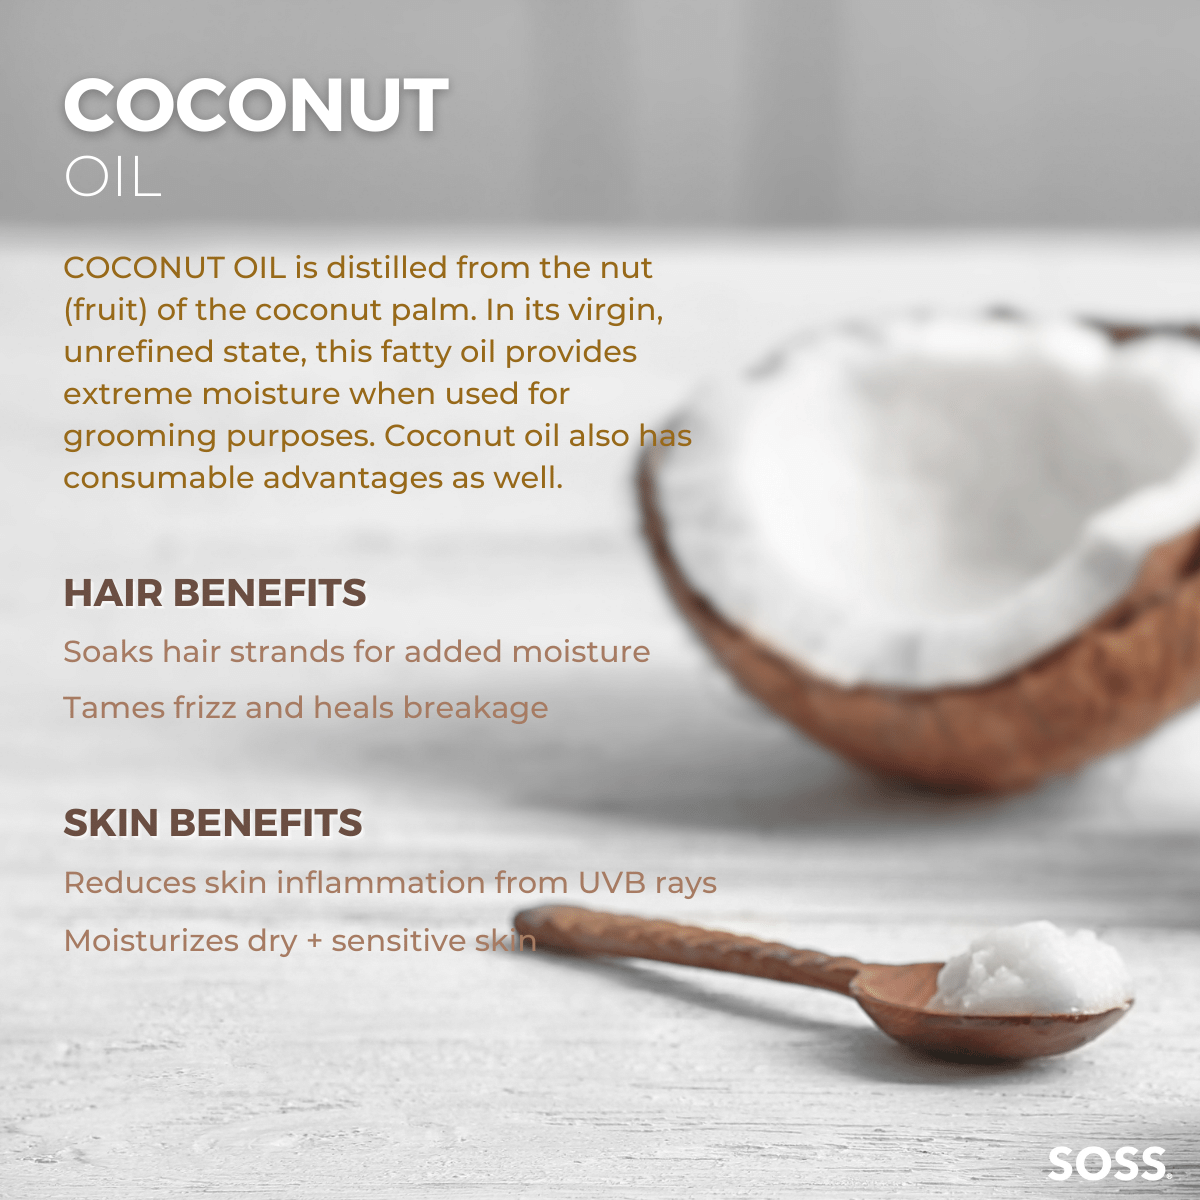 Coconut Oil is a known humectant that excessively moisturizes and nourishes skin and hair.